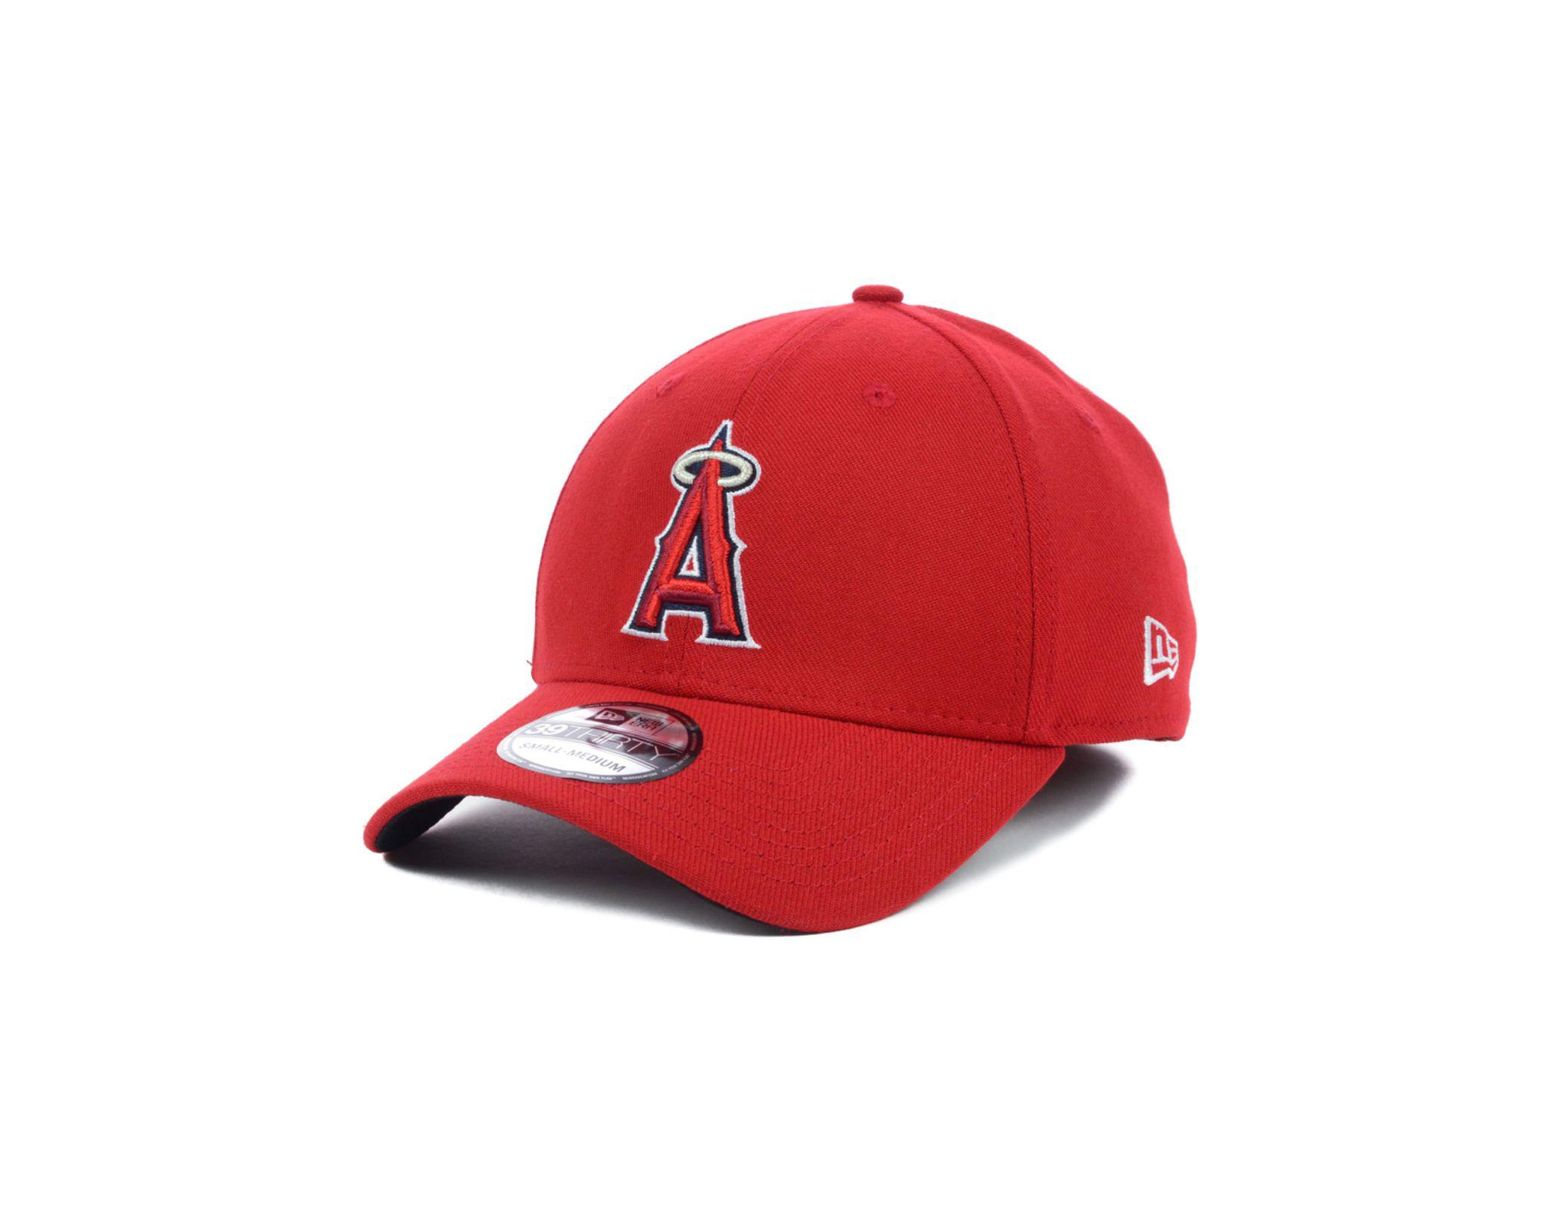 3a54b4bea3de9a KTZ Los Angeles Angels Of Anaheim Mlb Team Classic 39thirty Cap in Red for  Men - Lyst